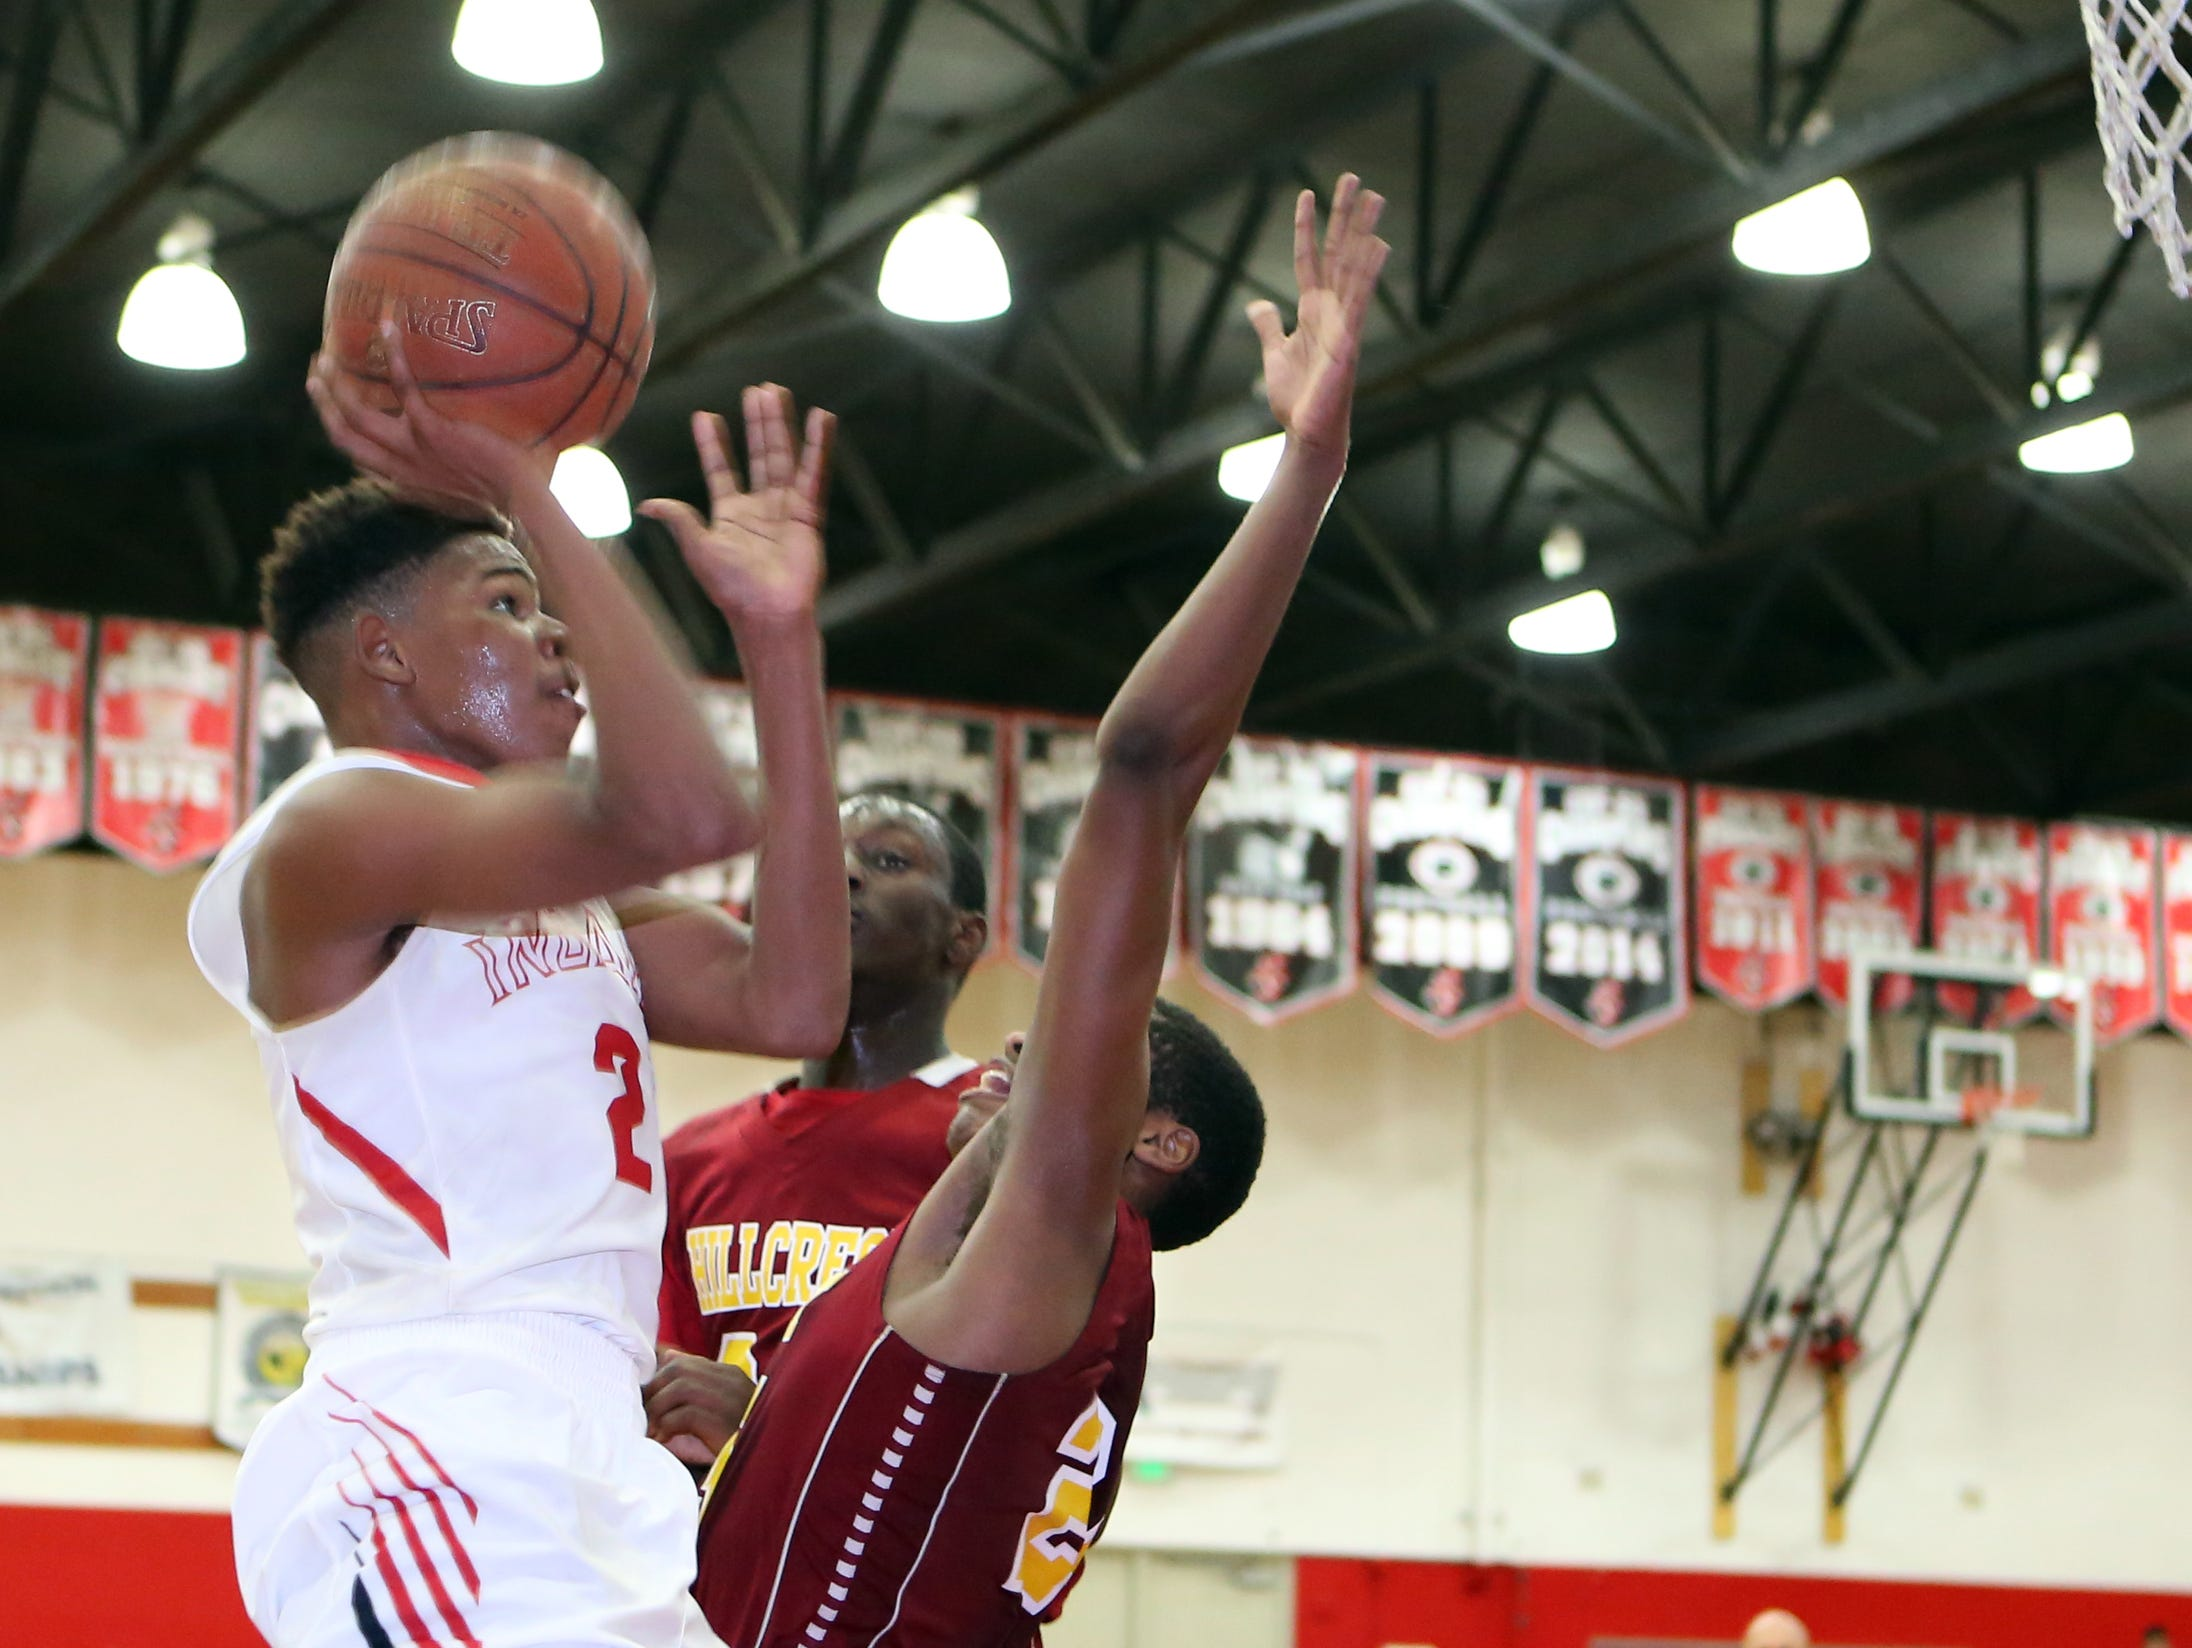 Palm Springs' John Rich drives to the basket during the playoff game against Hillcrest in Palm Springs on Wednesday.